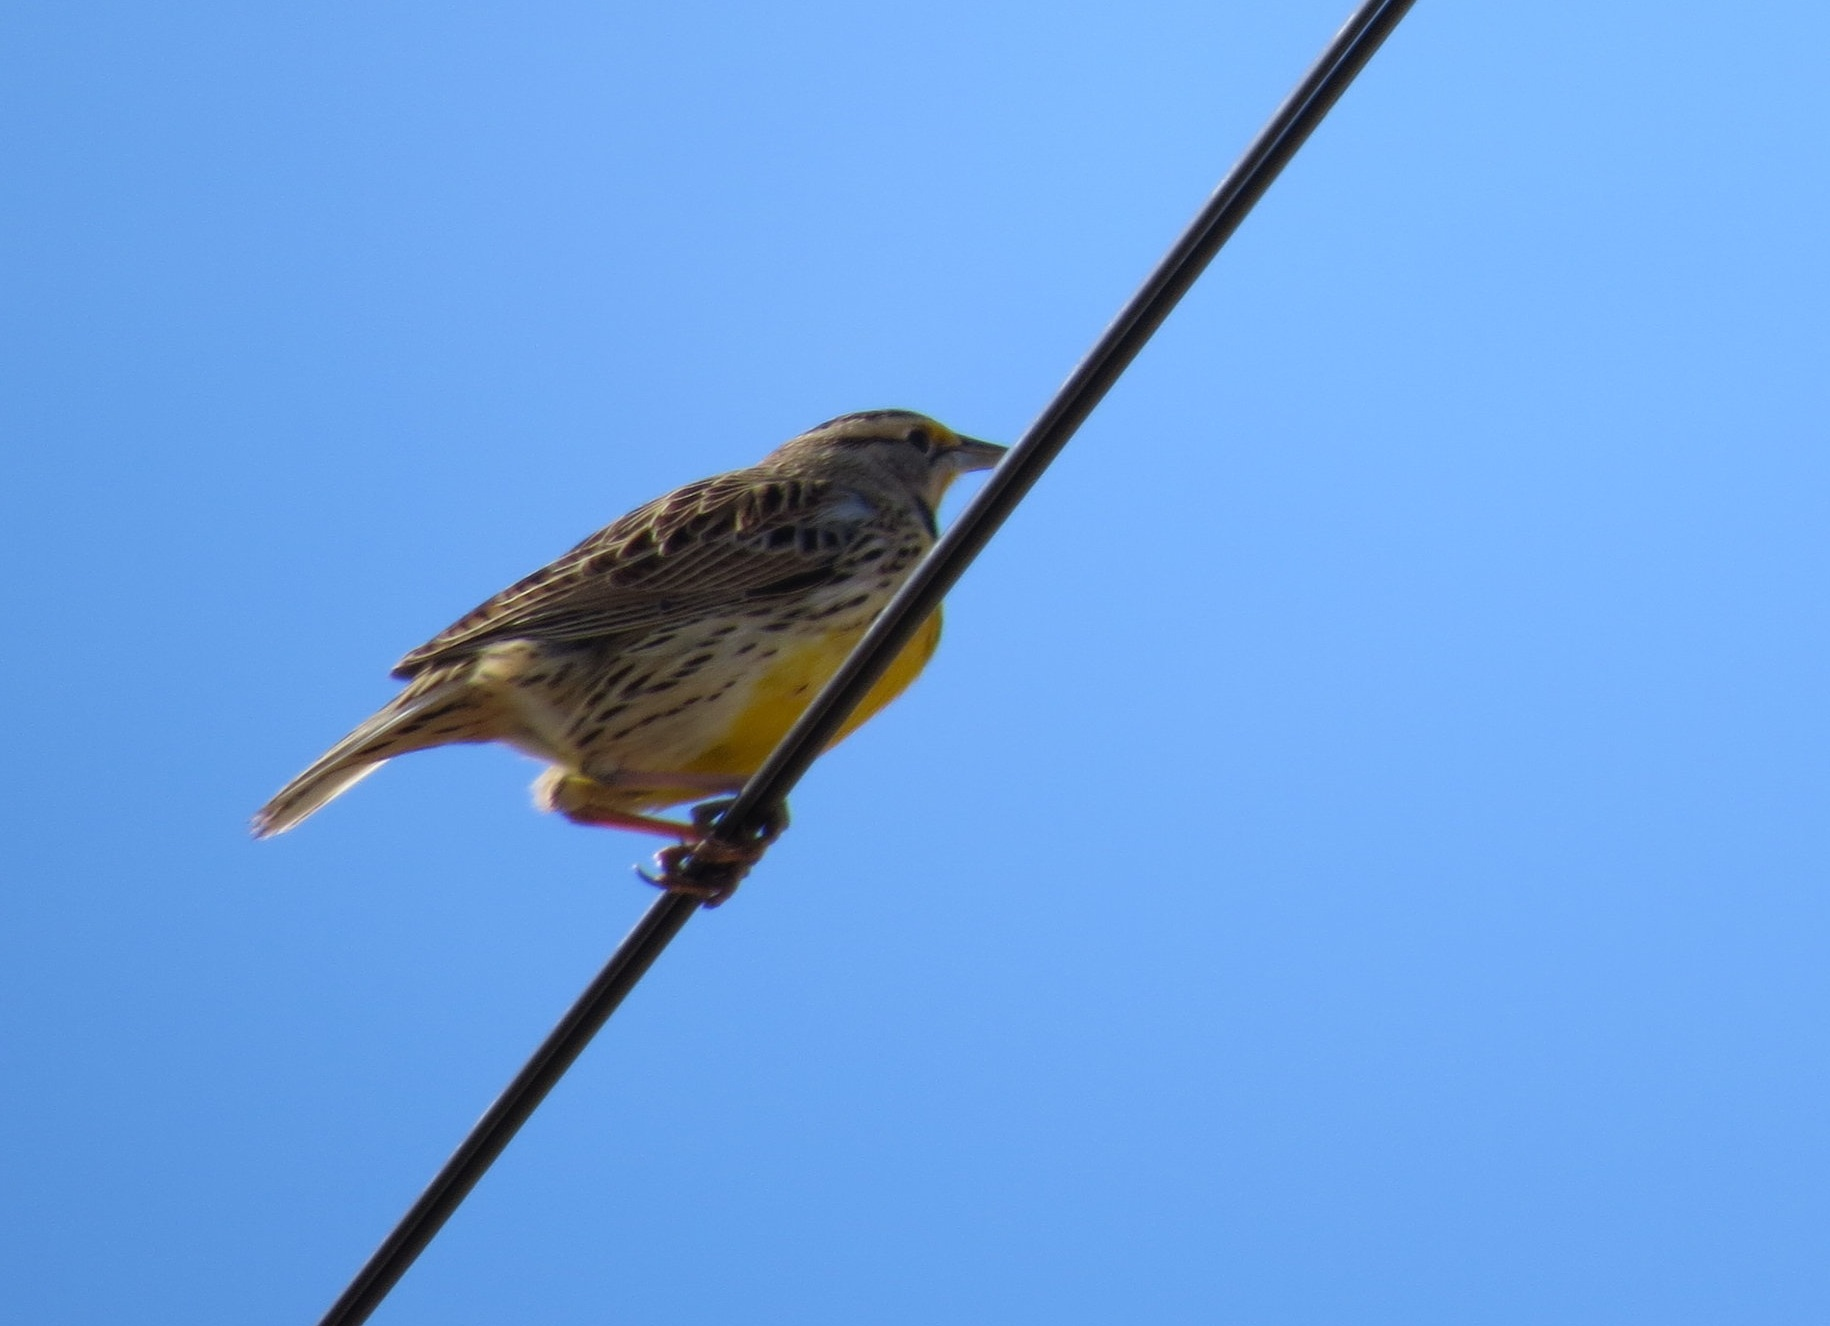 Eastern meadowlark photo by Adrianna Nelson